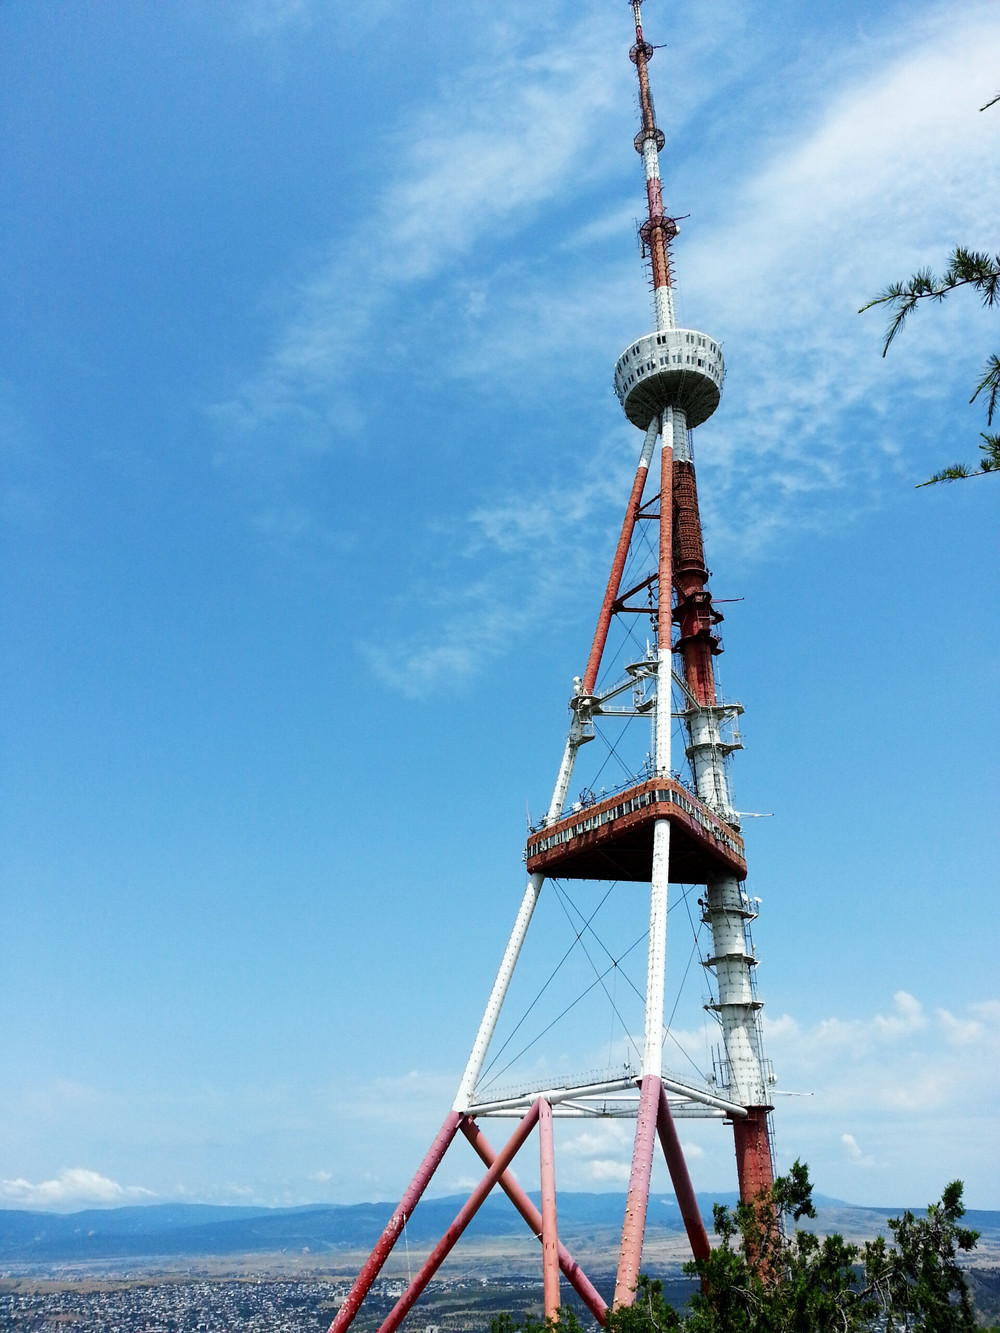 The Tbilisi TV Tower.  Built in 1972, height 274,5 m